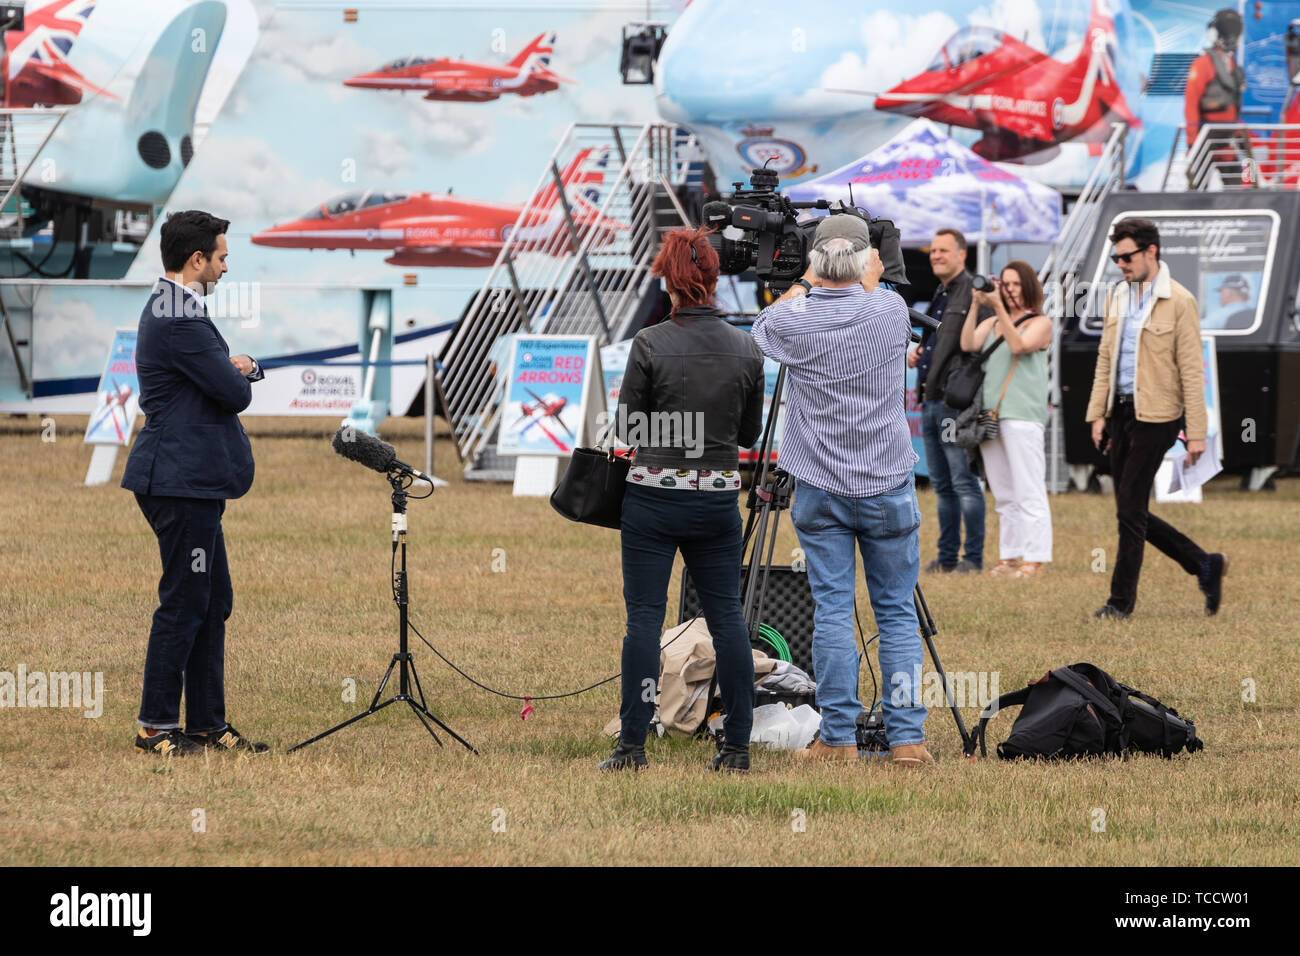 A camera crew setting up for a live broadcast Stock Photo